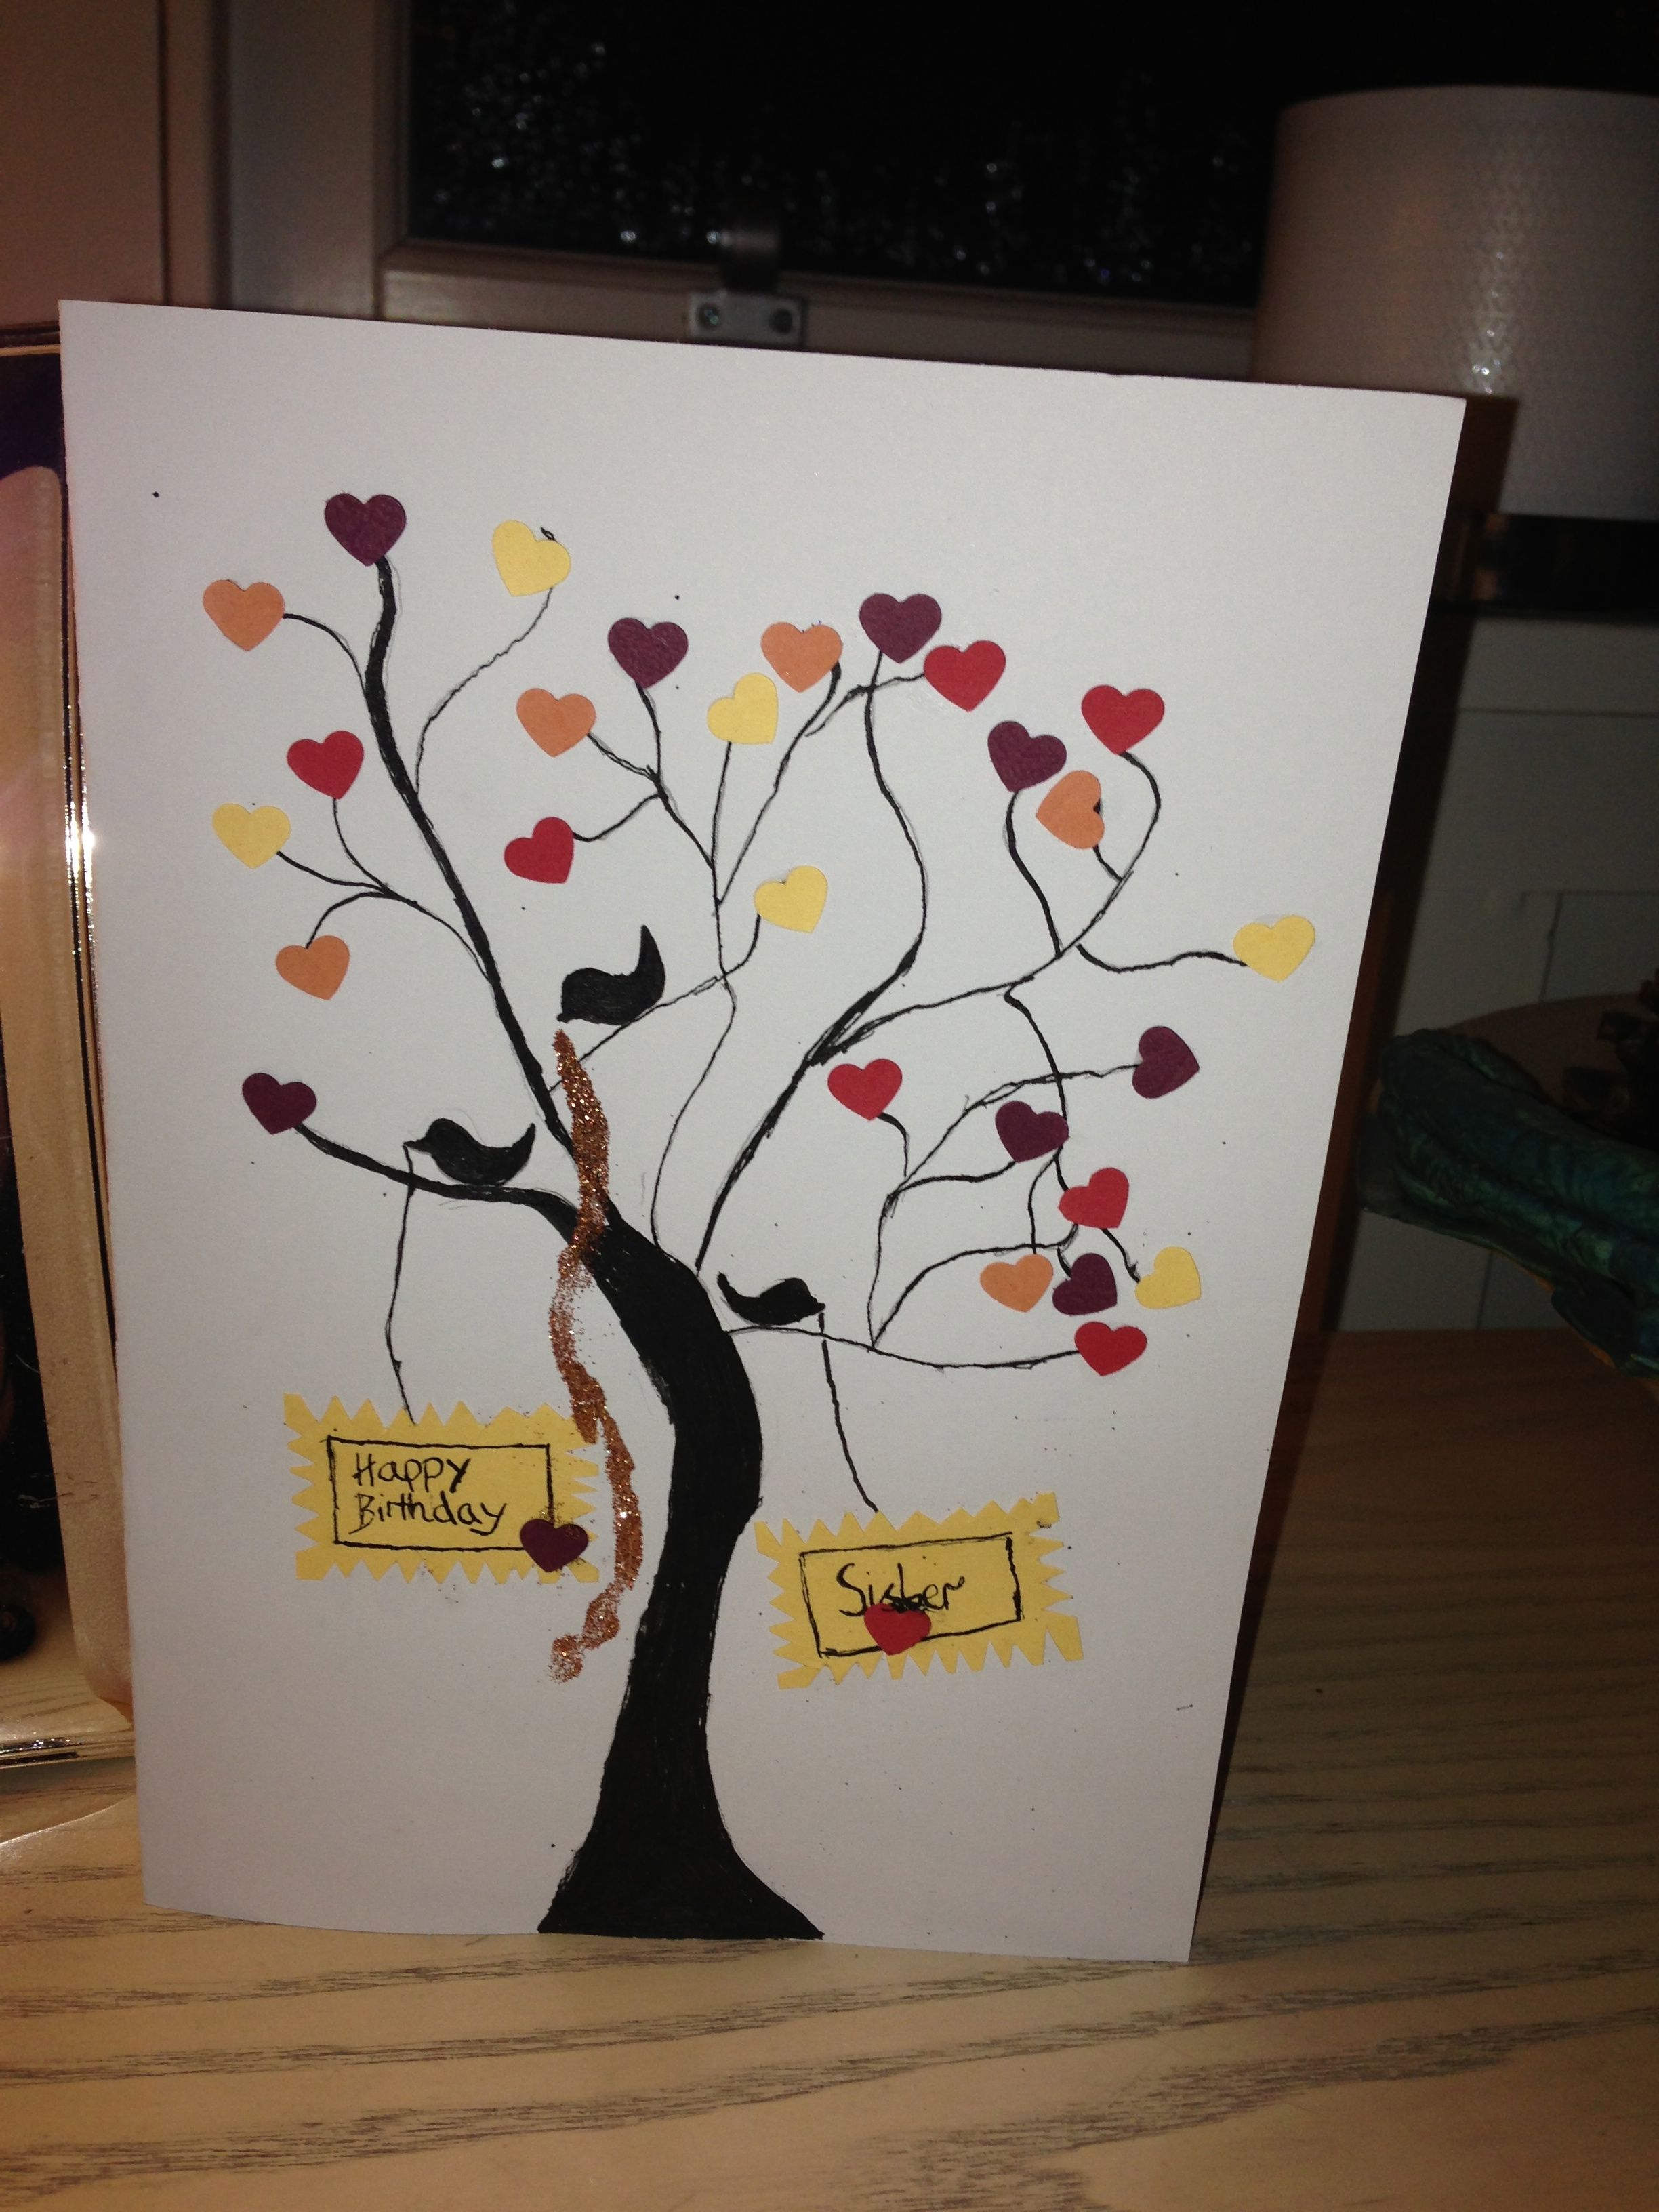 I did this card at home made it for my sister's birthday